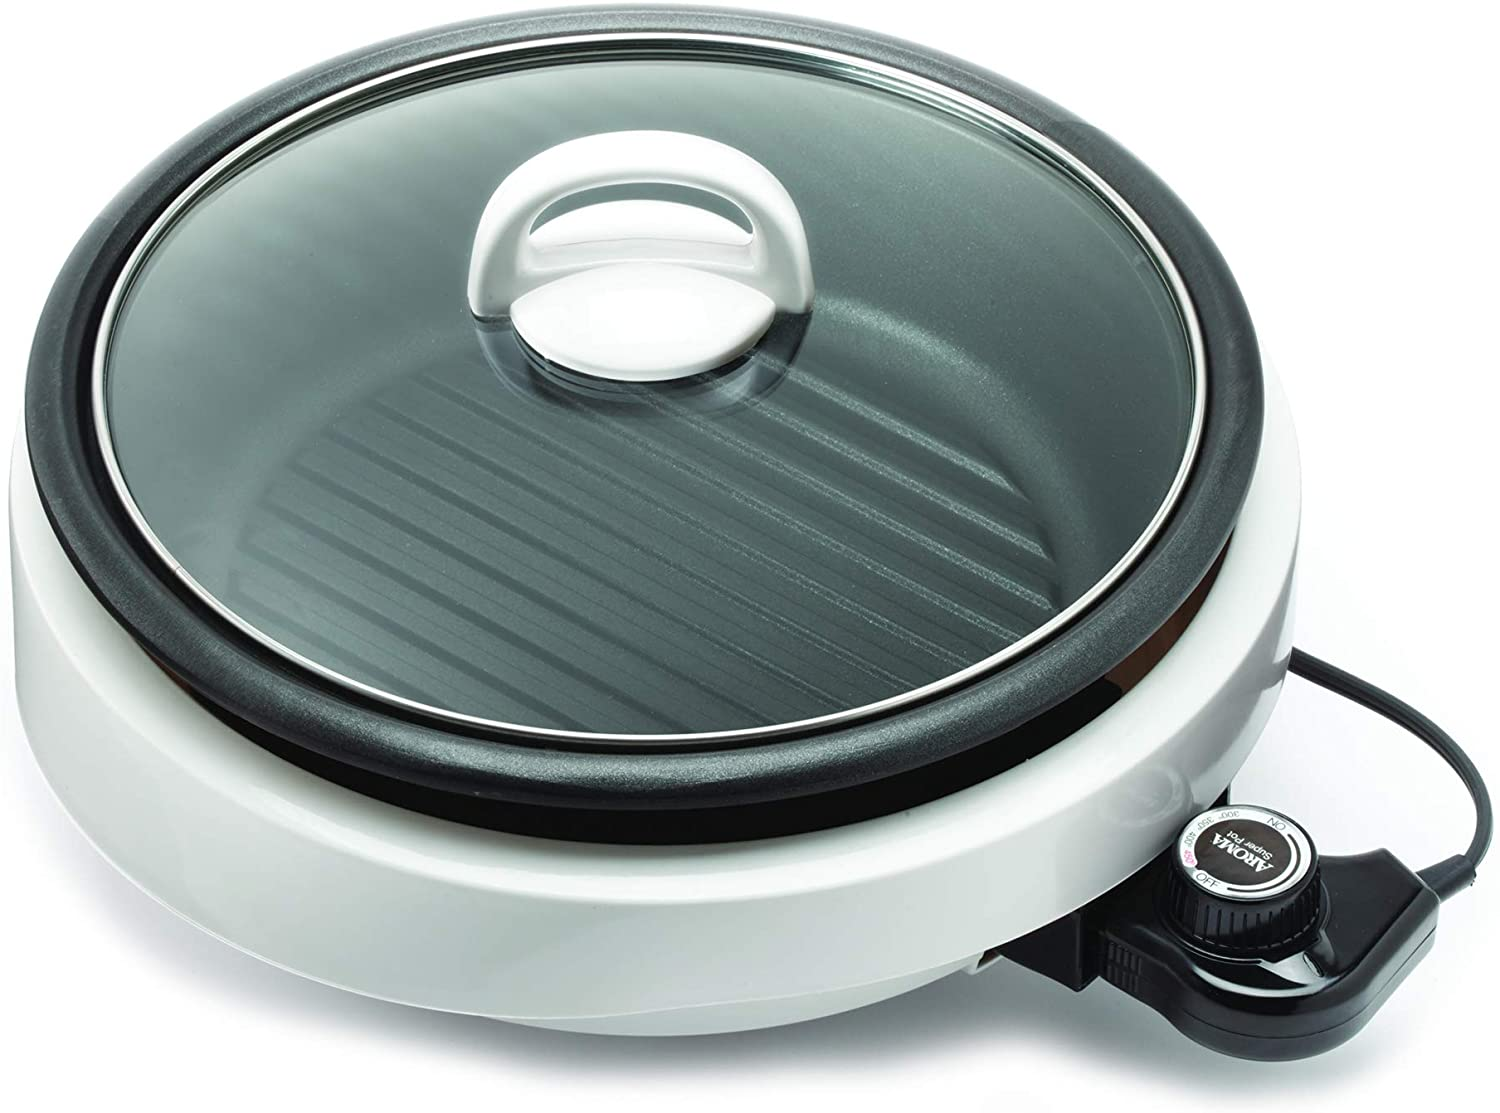 Aroma Housewares ASP-137 Grillet 3Qt. 3-in-1 Cool-Touch Electric Indoor Grill Portable, Dishwasher Safe, 3-Quart, White